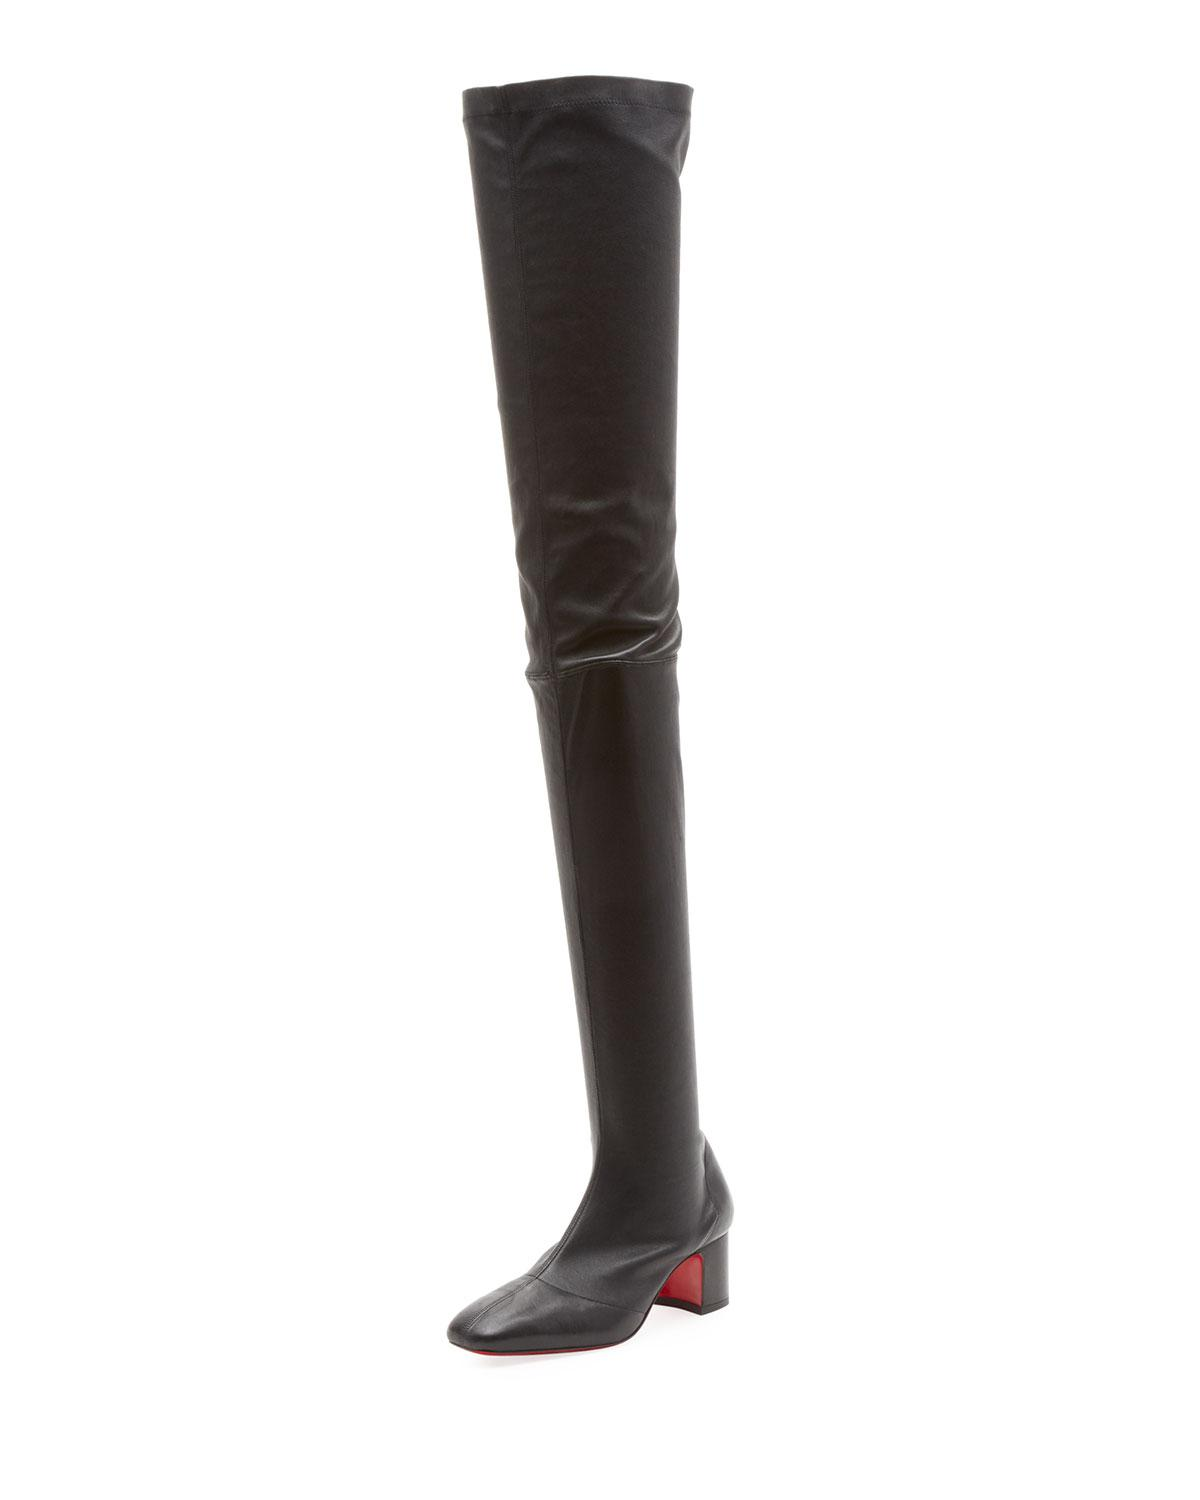 f63a33278c2 Christian Louboutin Sursamoto Napa Red Sole Over-the-knee Boot in ...